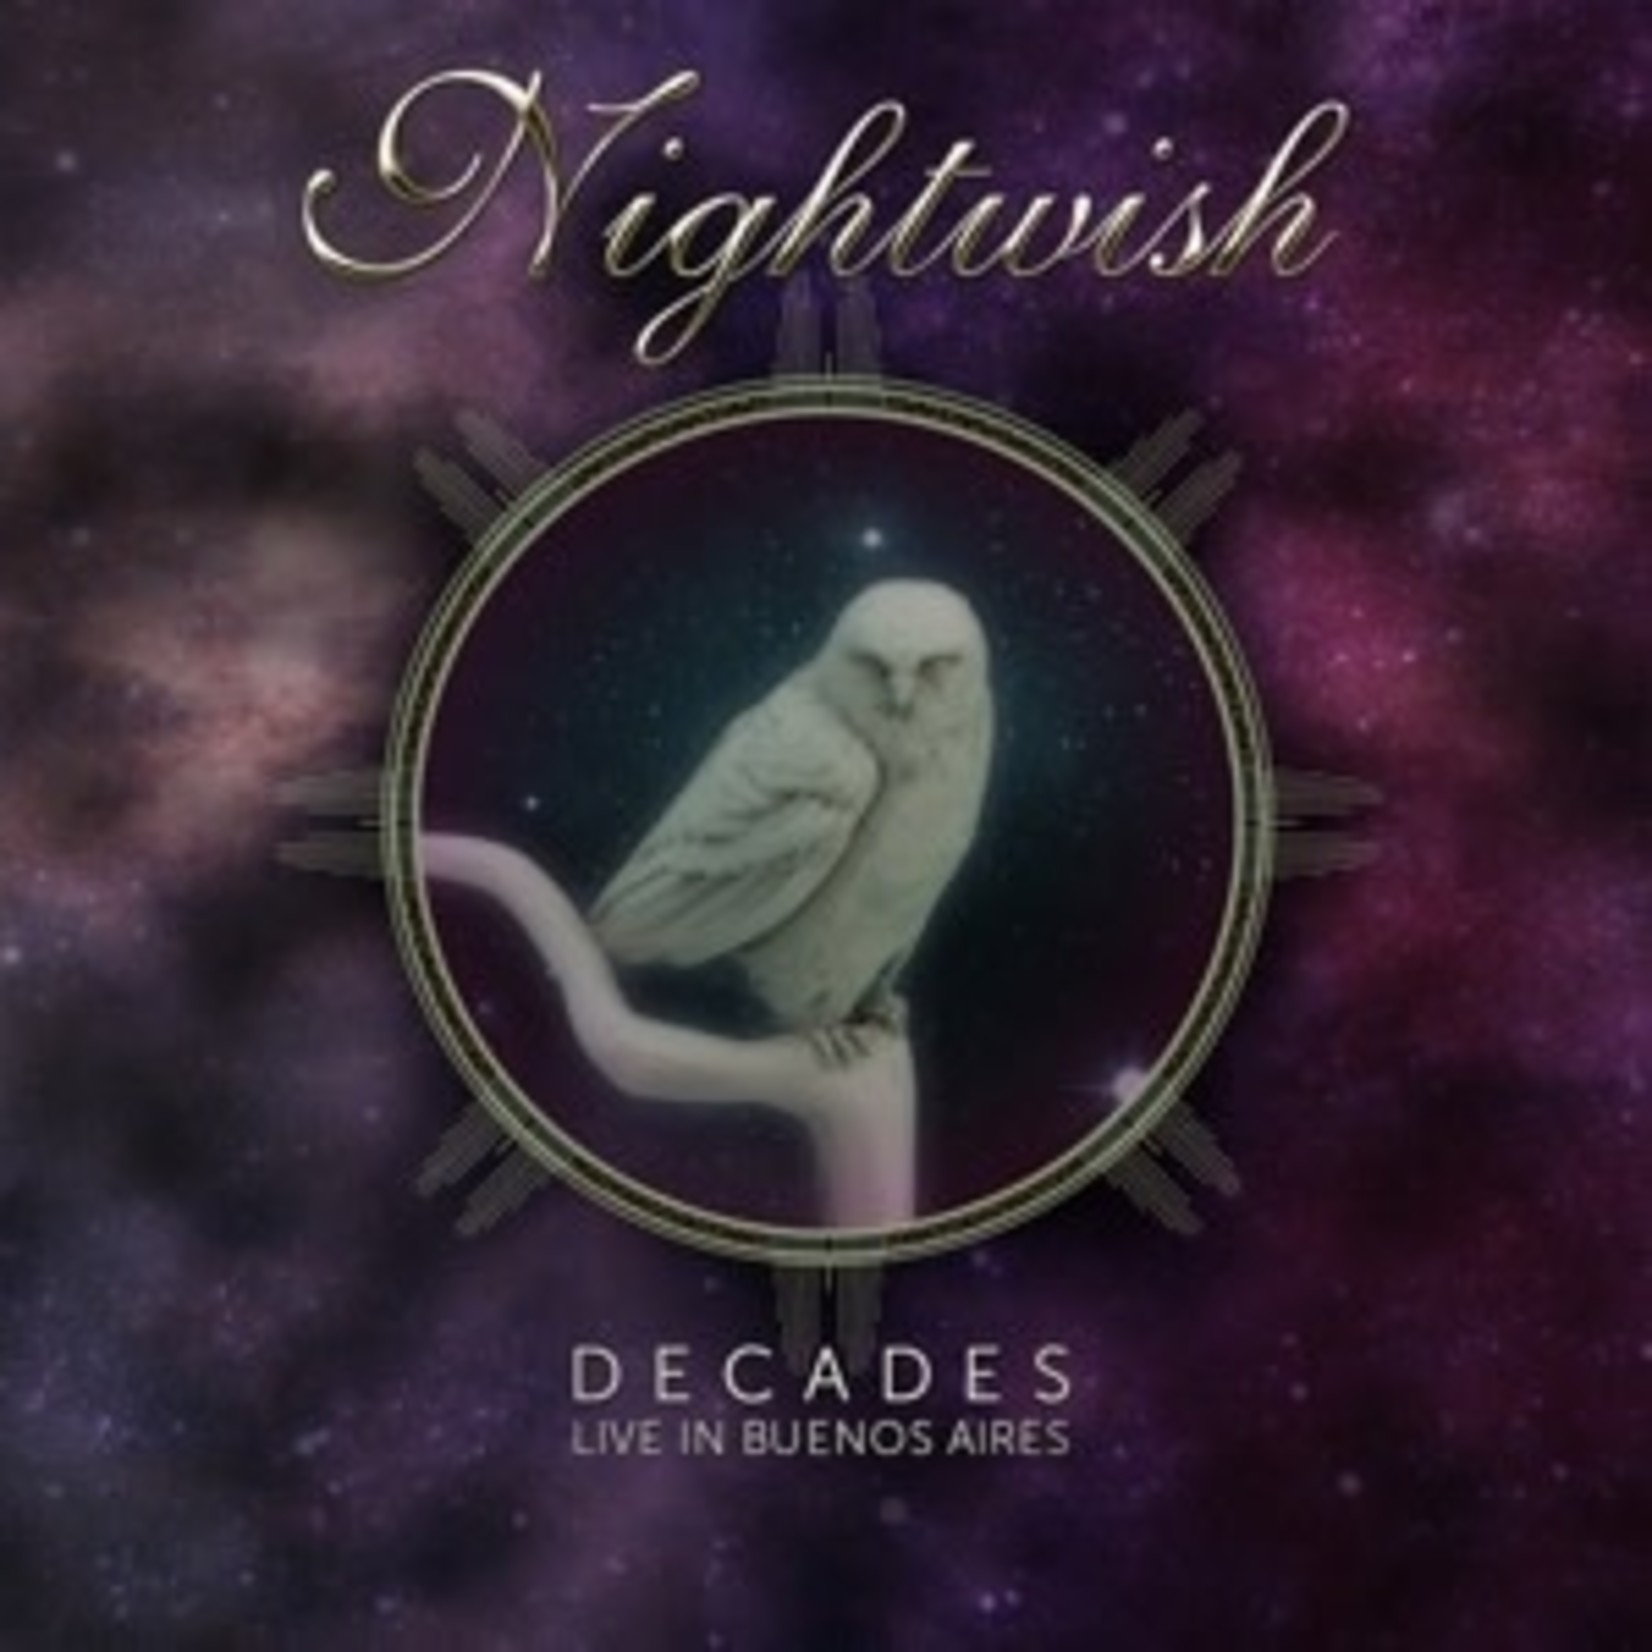 NIGHTWISH - Decades: Live In Buenos Aires (3LP) Incl. 8-Page Booklet Limited Edition   (VINYL)